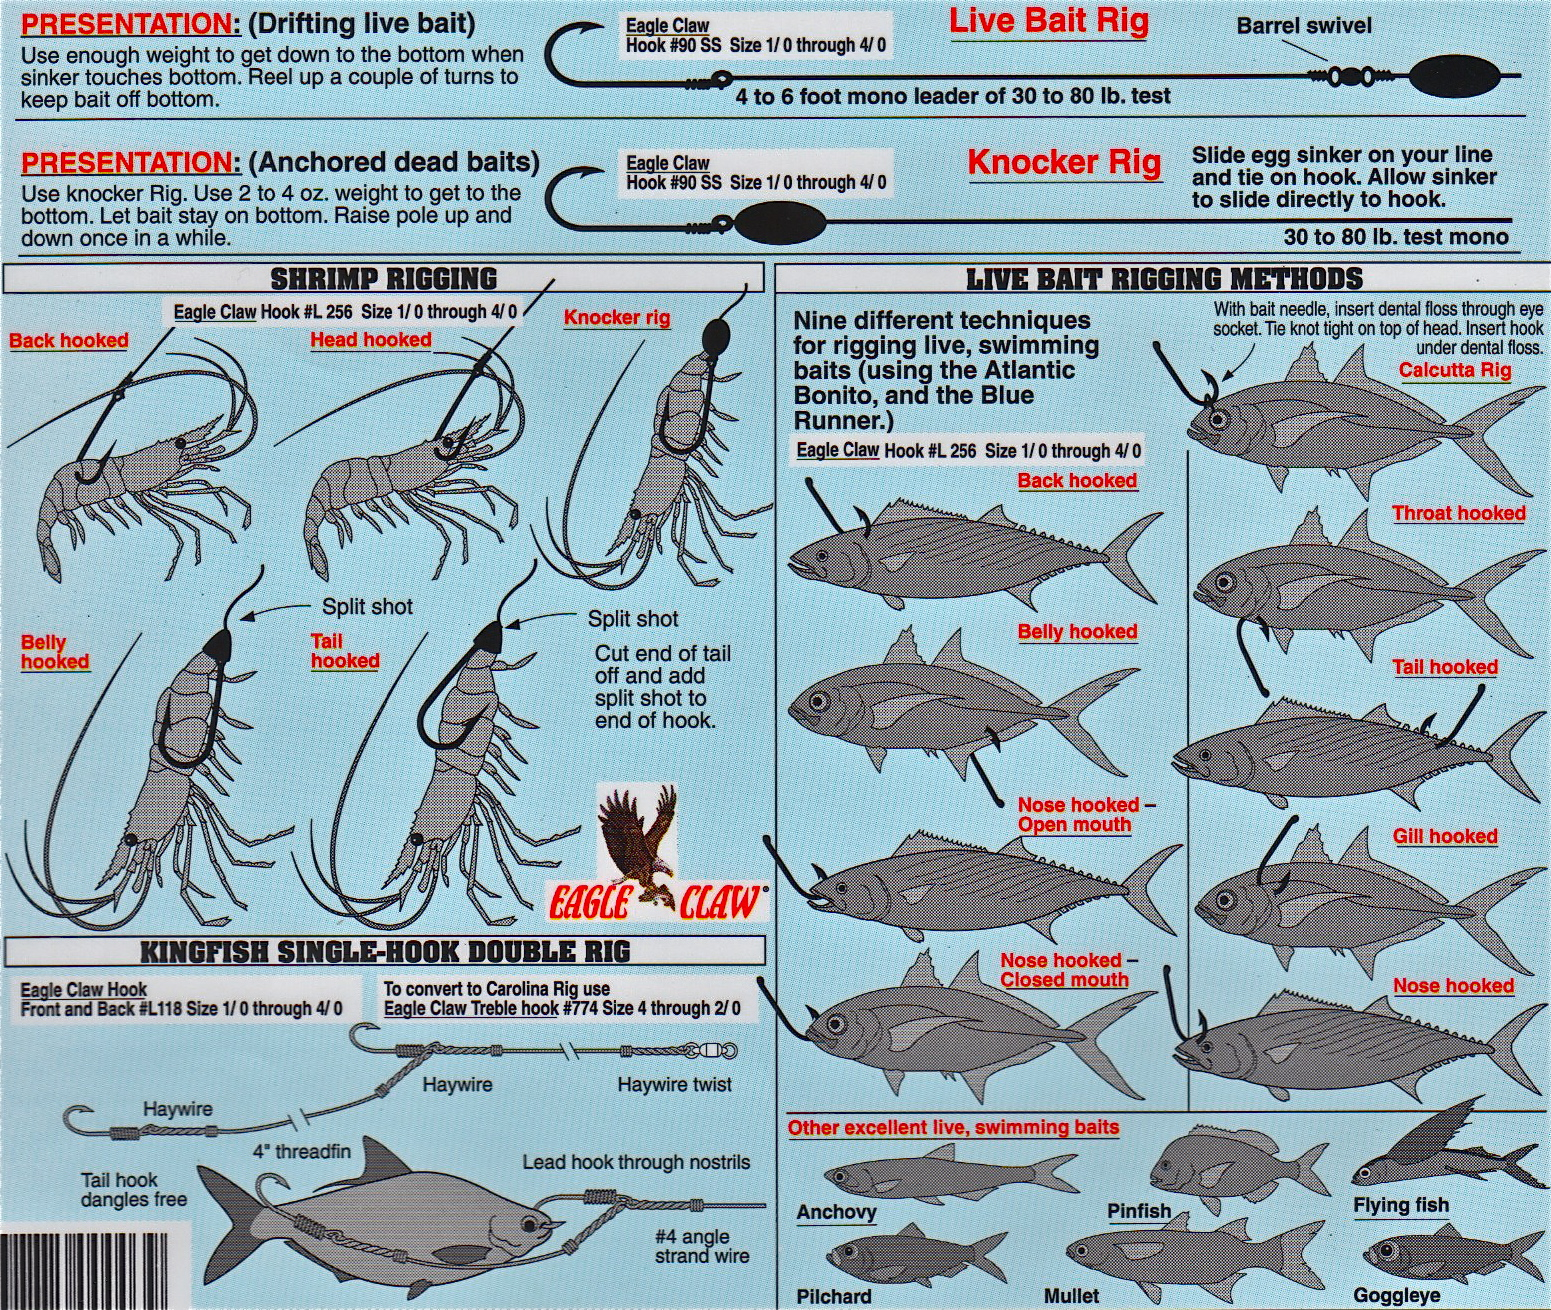 How to hook all types of baitfish